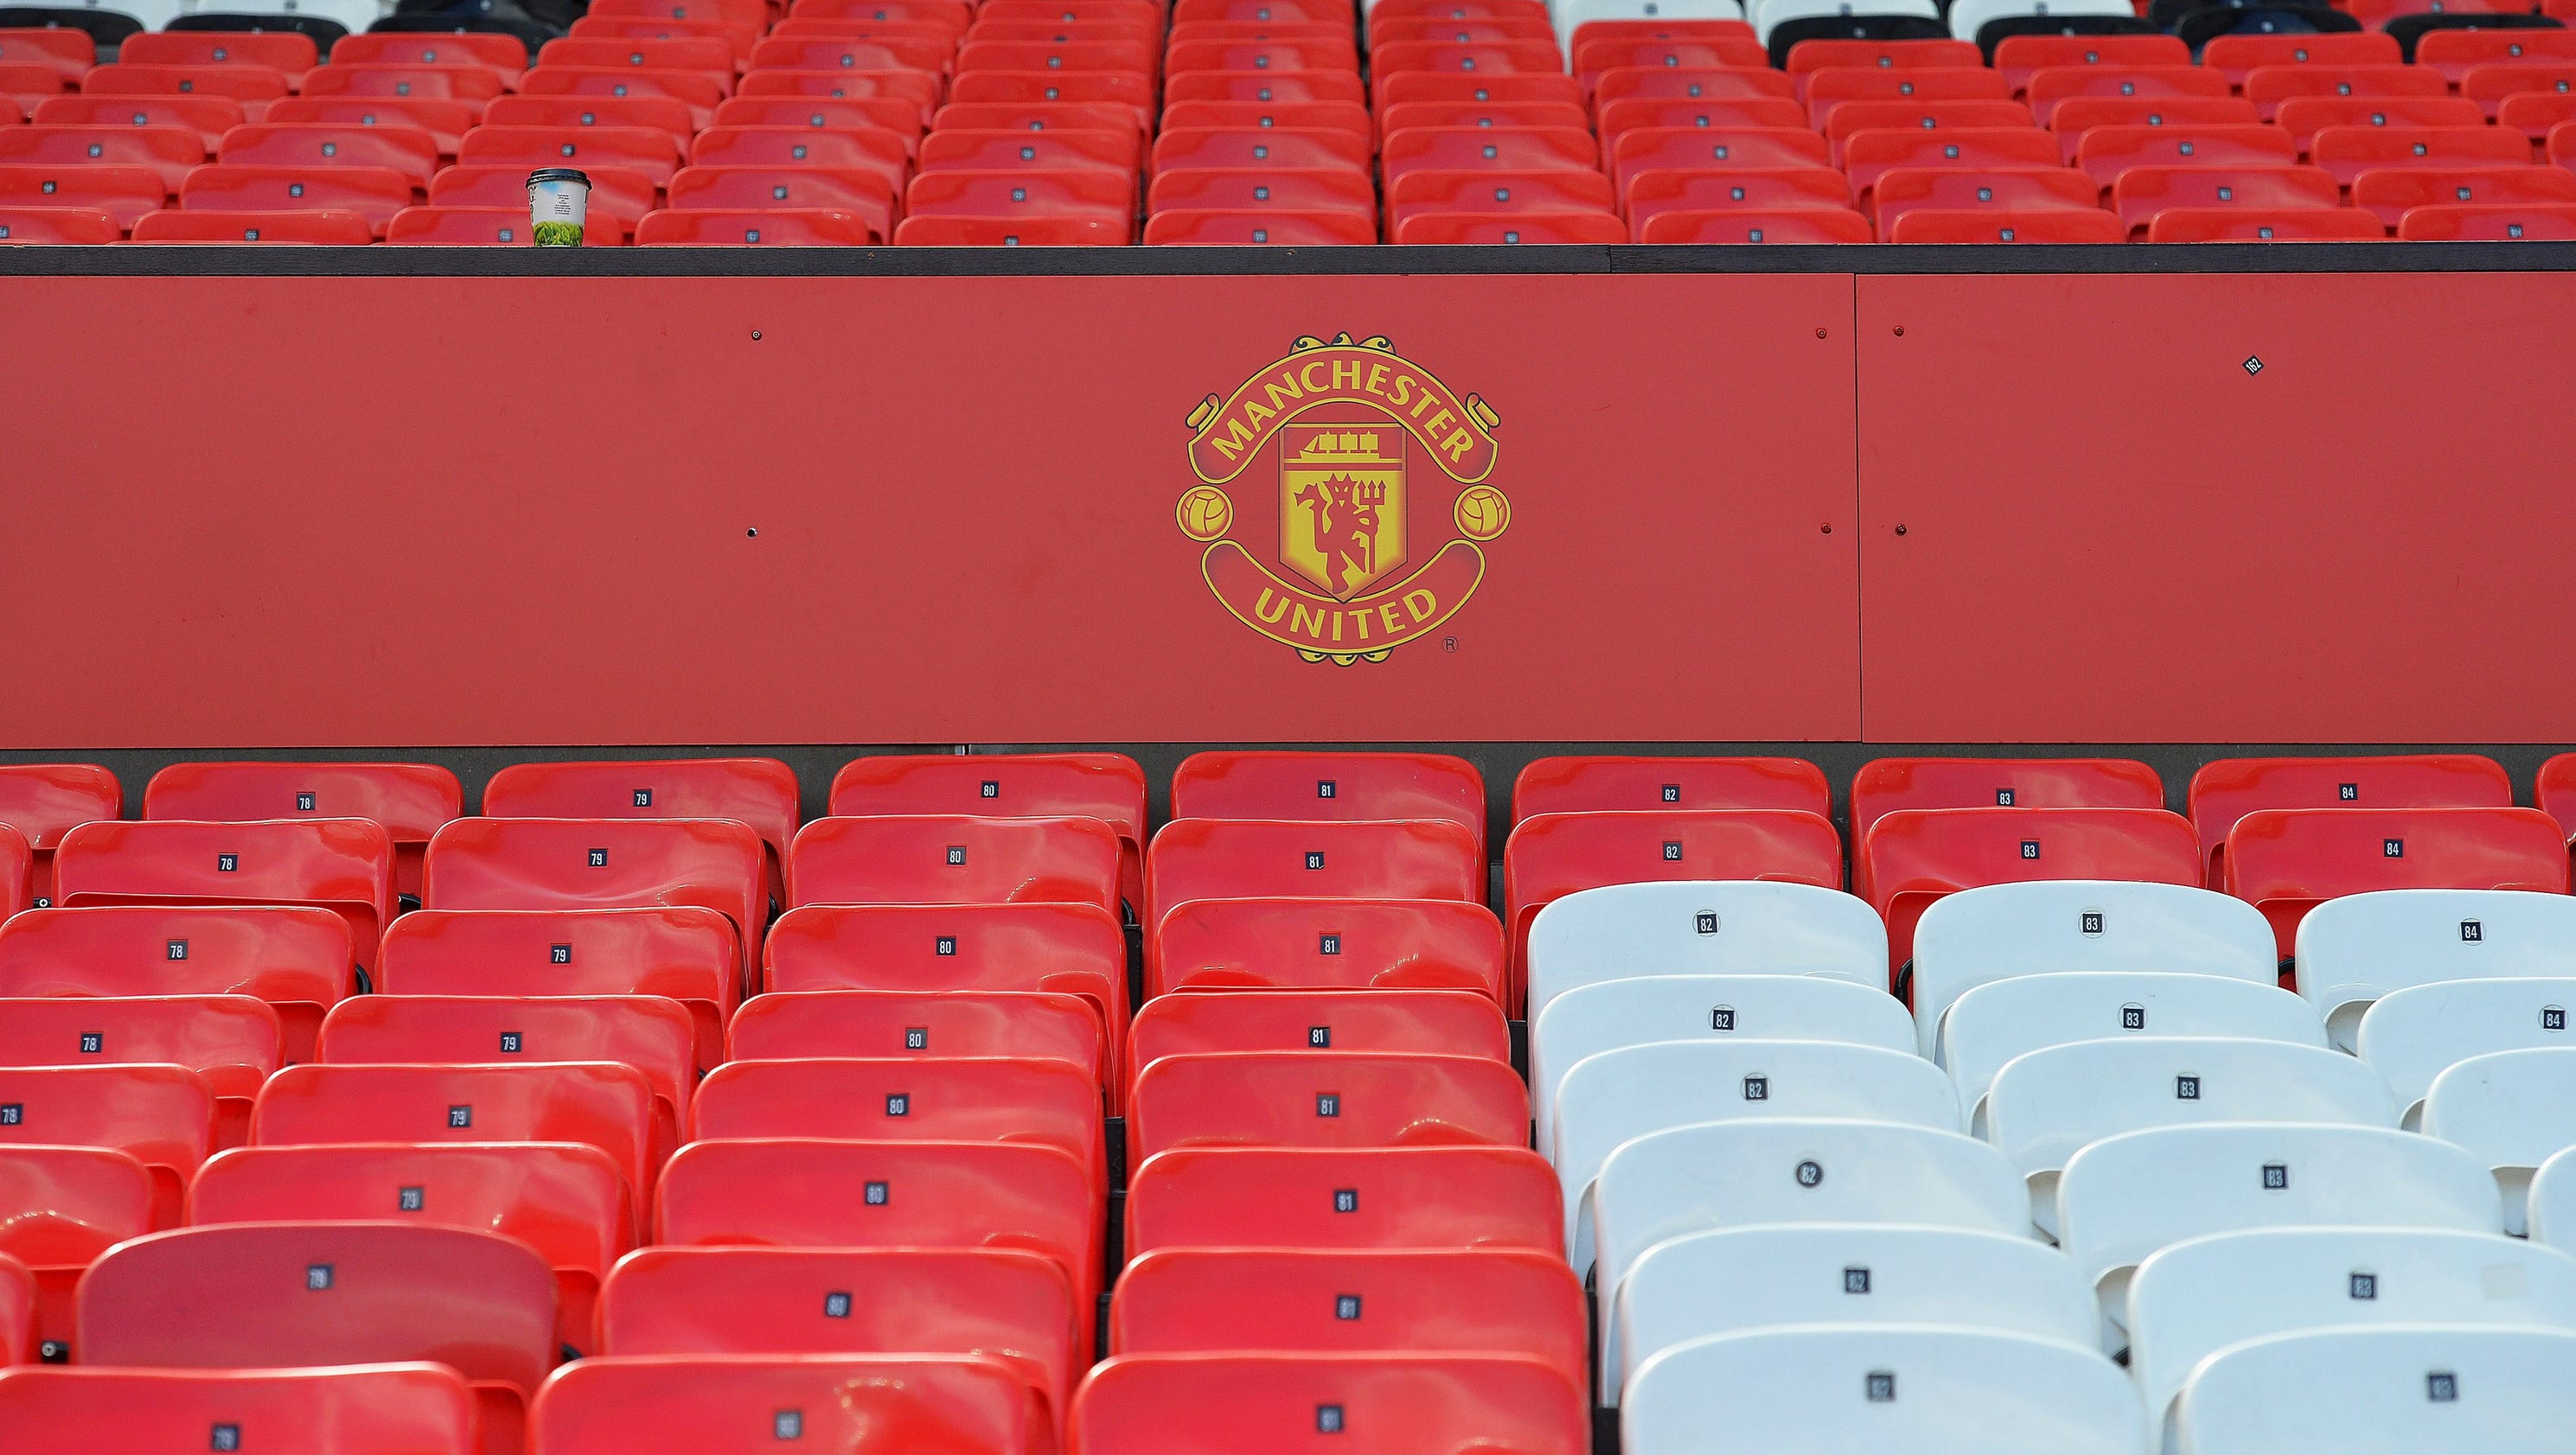 Controlled explosion at Manchester United's Old Trafford; not a 'viable device'